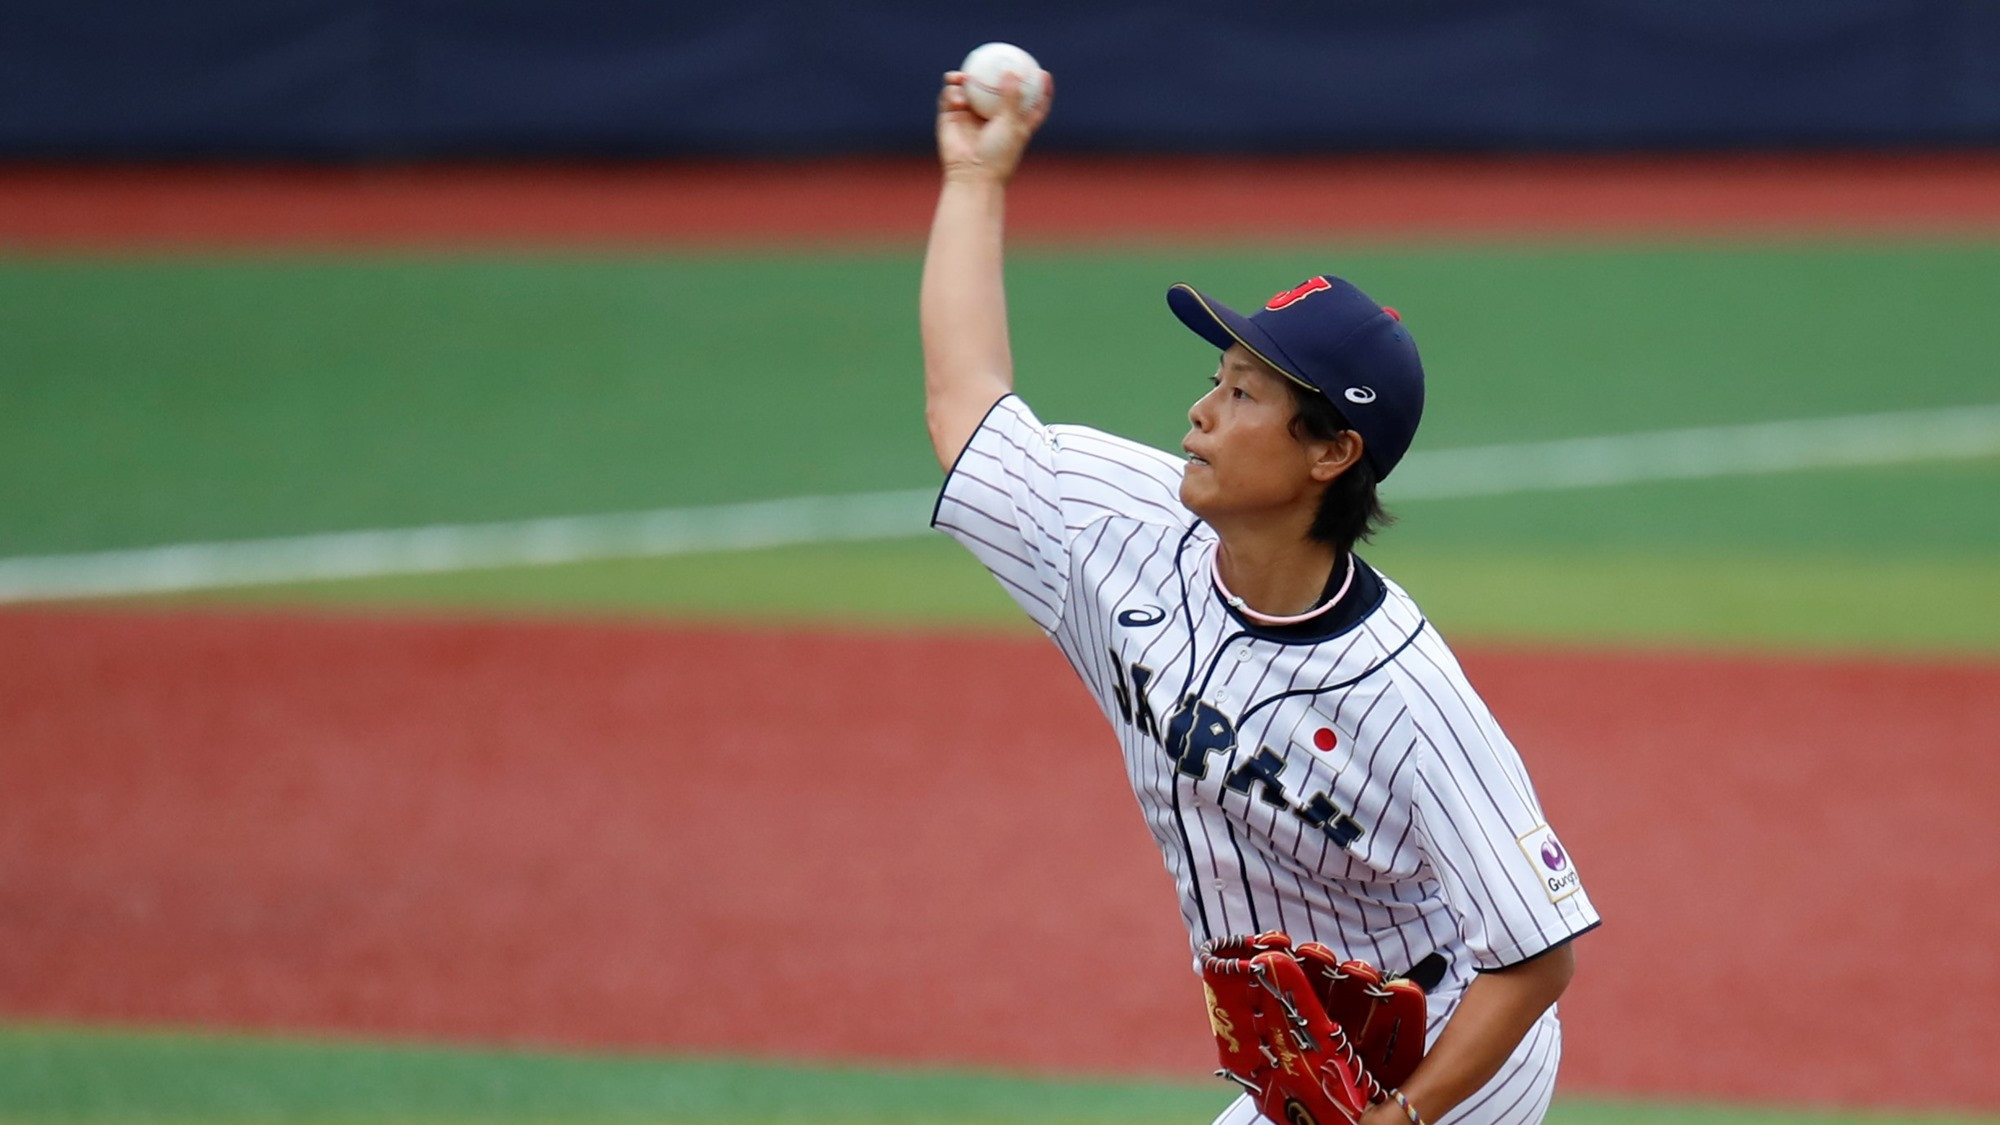 Ayami Sato led Japan to victory over the US with a near perfect pitching performance ©WBSC